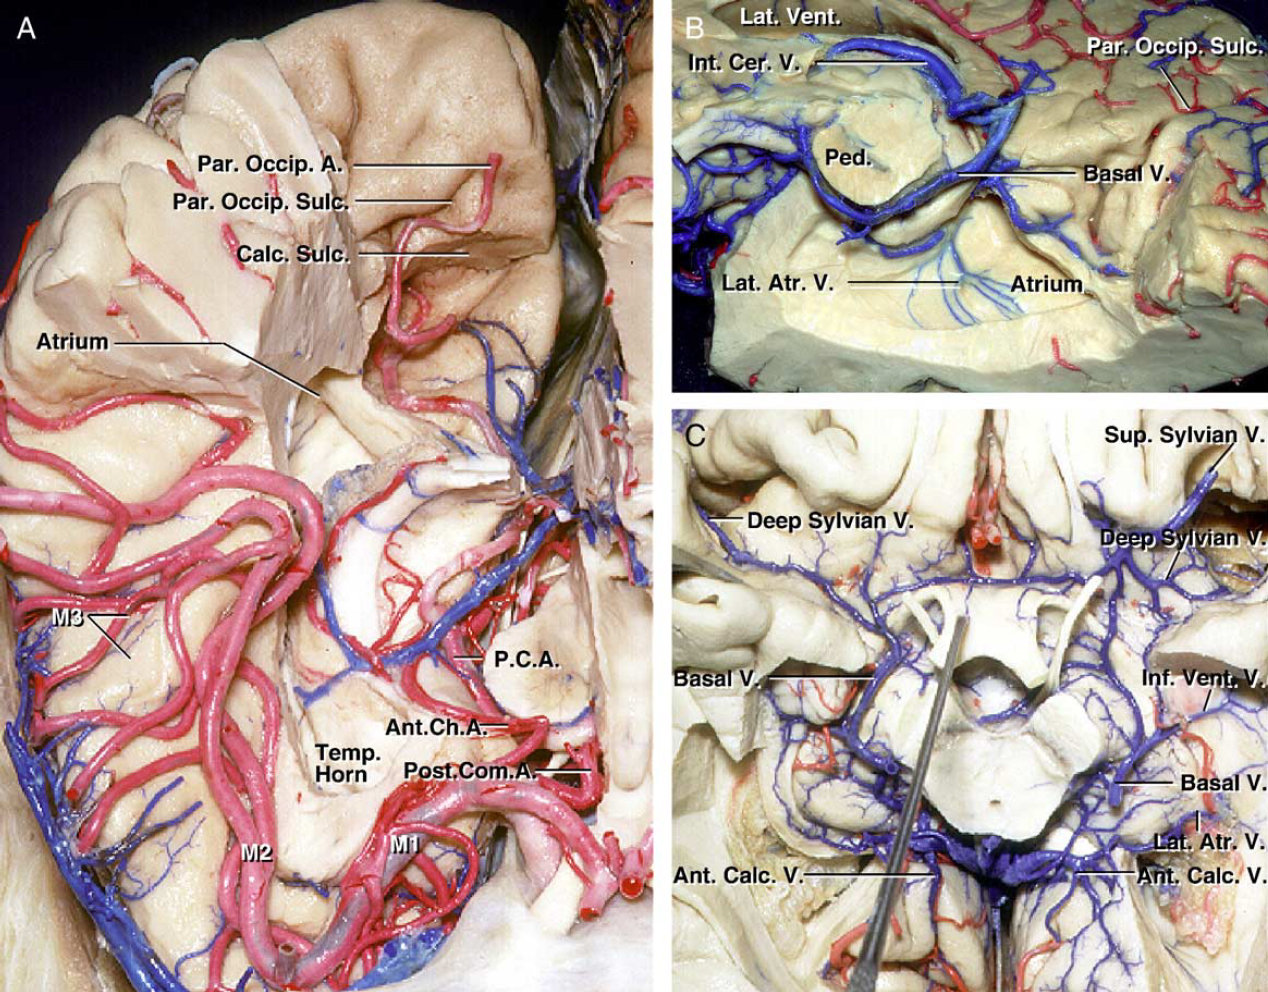 Figure 3. Choroidal arteries and ventricular veins. A: The anterior part of the right hemisphere has been removed down to the level of the temporal lobe and the midbrain. The anterior choroidal artery passes around the upper medial part of the uncus to reach the temporal horn. It passes posteriorly and dorsally along the plexus. B: Anteroinferior part of the right temporal and occipital lobes have been removed to expose the atrium from below. The lateral atrial veins drain forward on the medial wall of the atrium toward the choroidal fissure. C: Inferior view of the basal cistern. The left atrial veins join the anterior calcarine vein before emptying into the vein of Galen. (Images courtesy of AL Rhoton, Jr.)